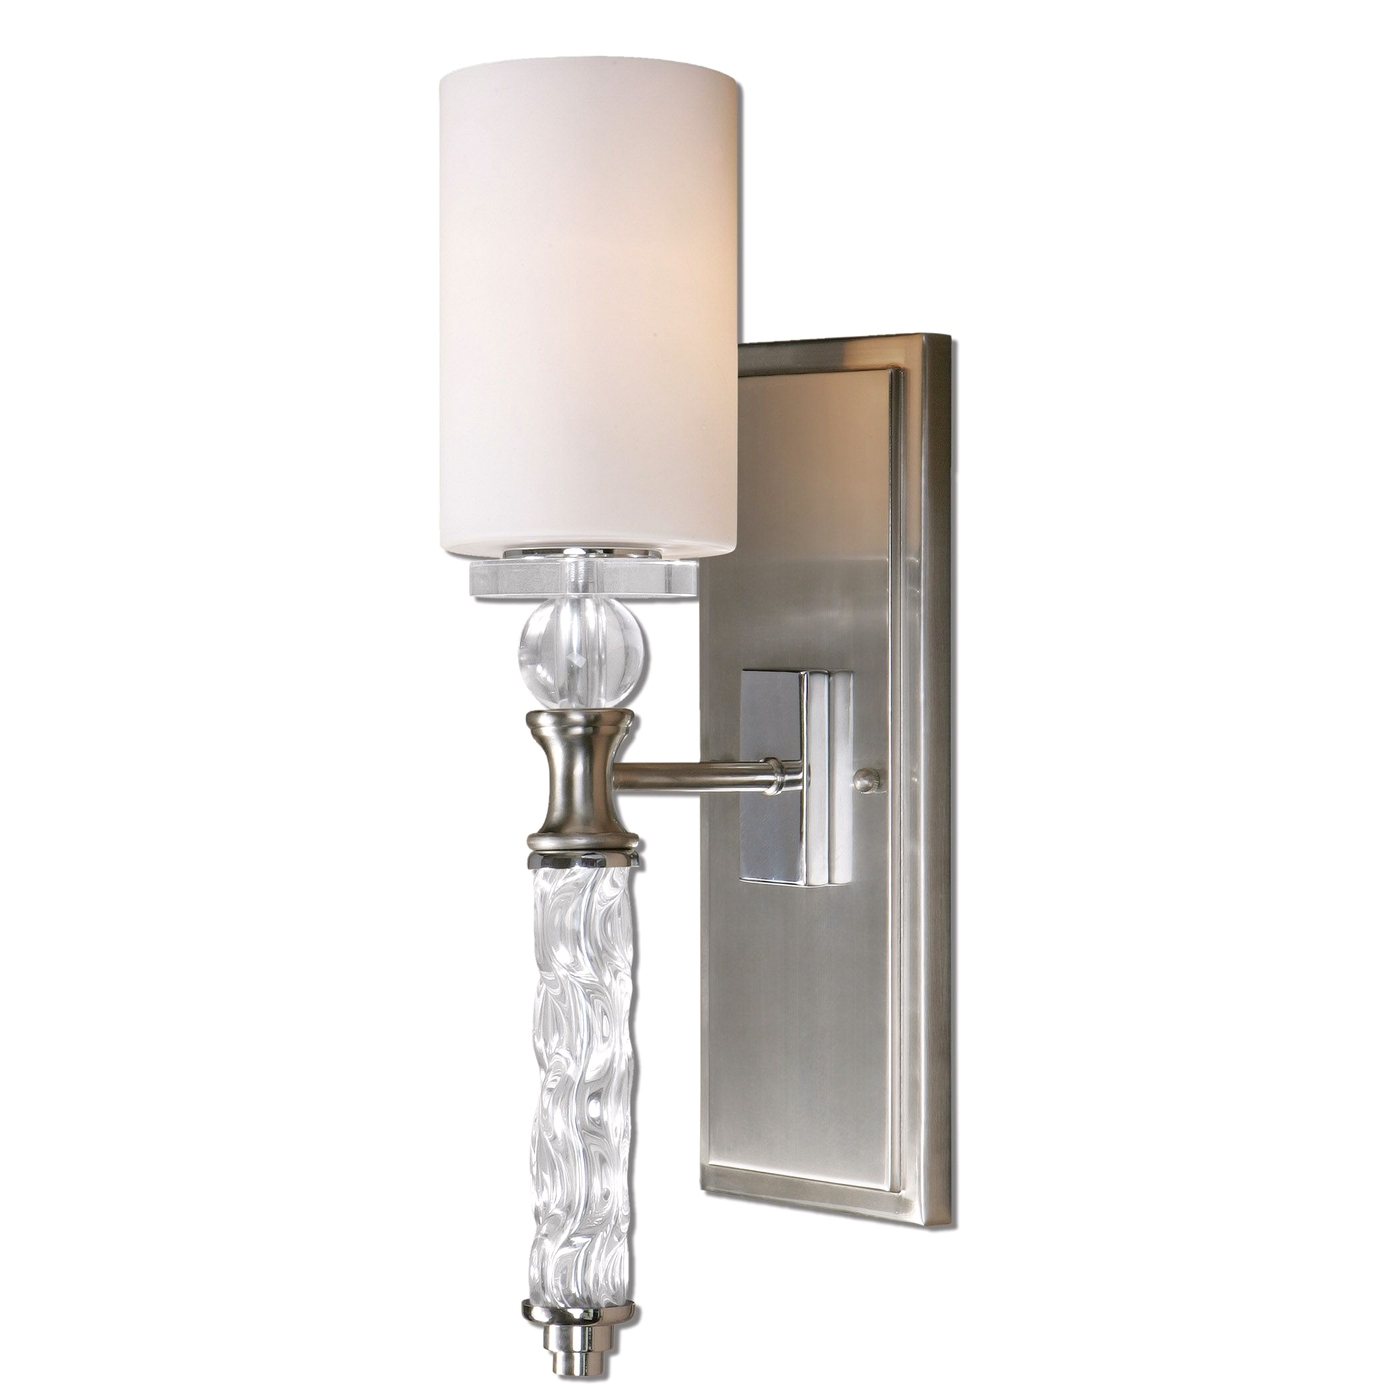 Campania Modern 1 Light Wall Sconce 22486